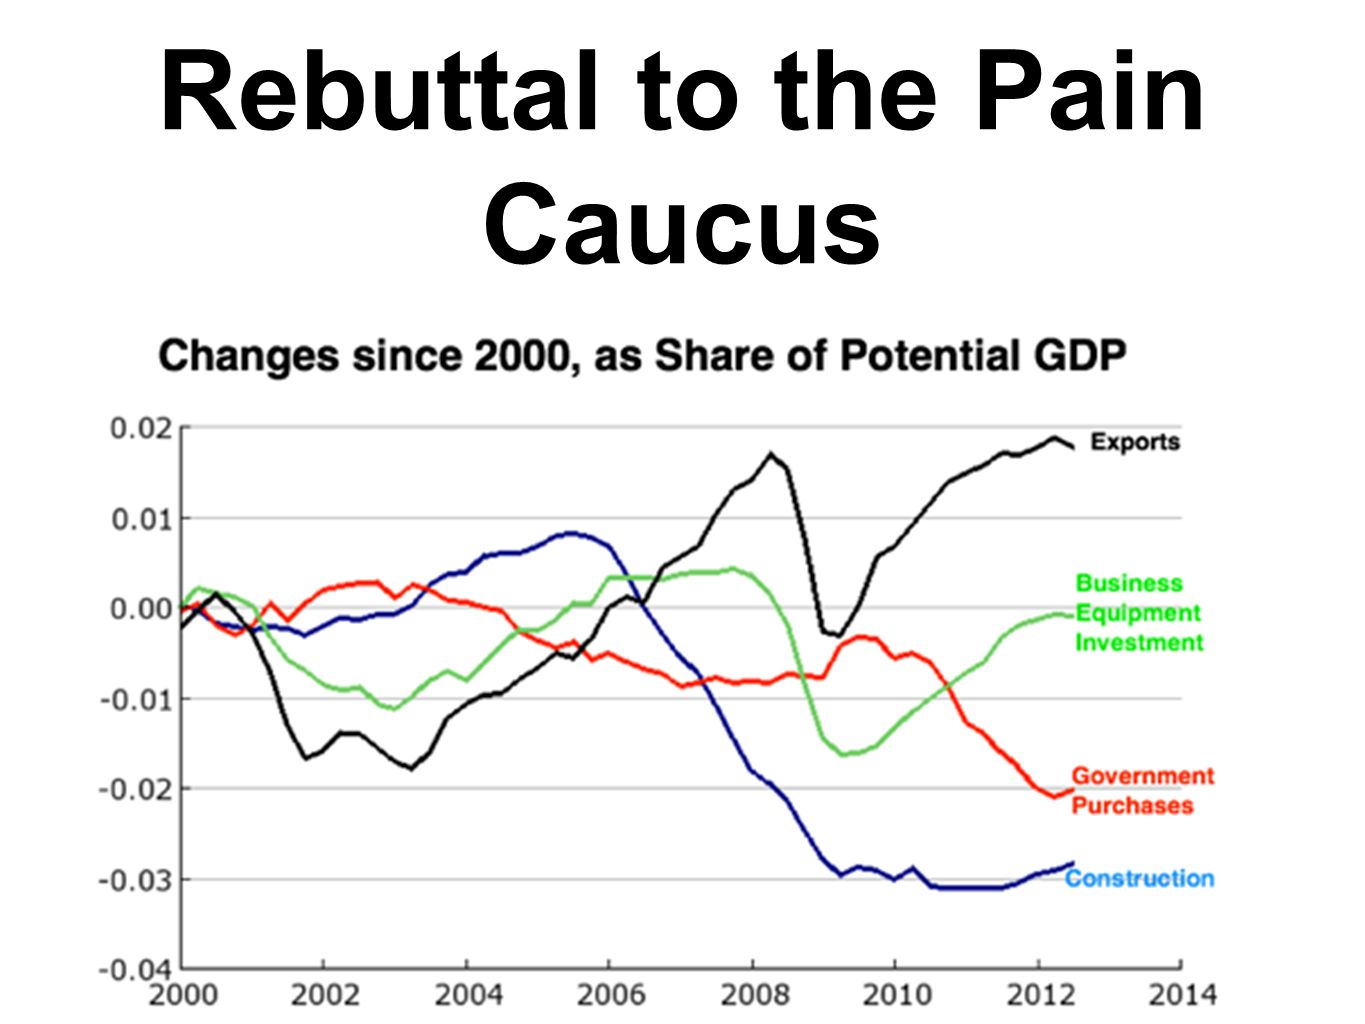 Rebuttal to the Pain Caucus